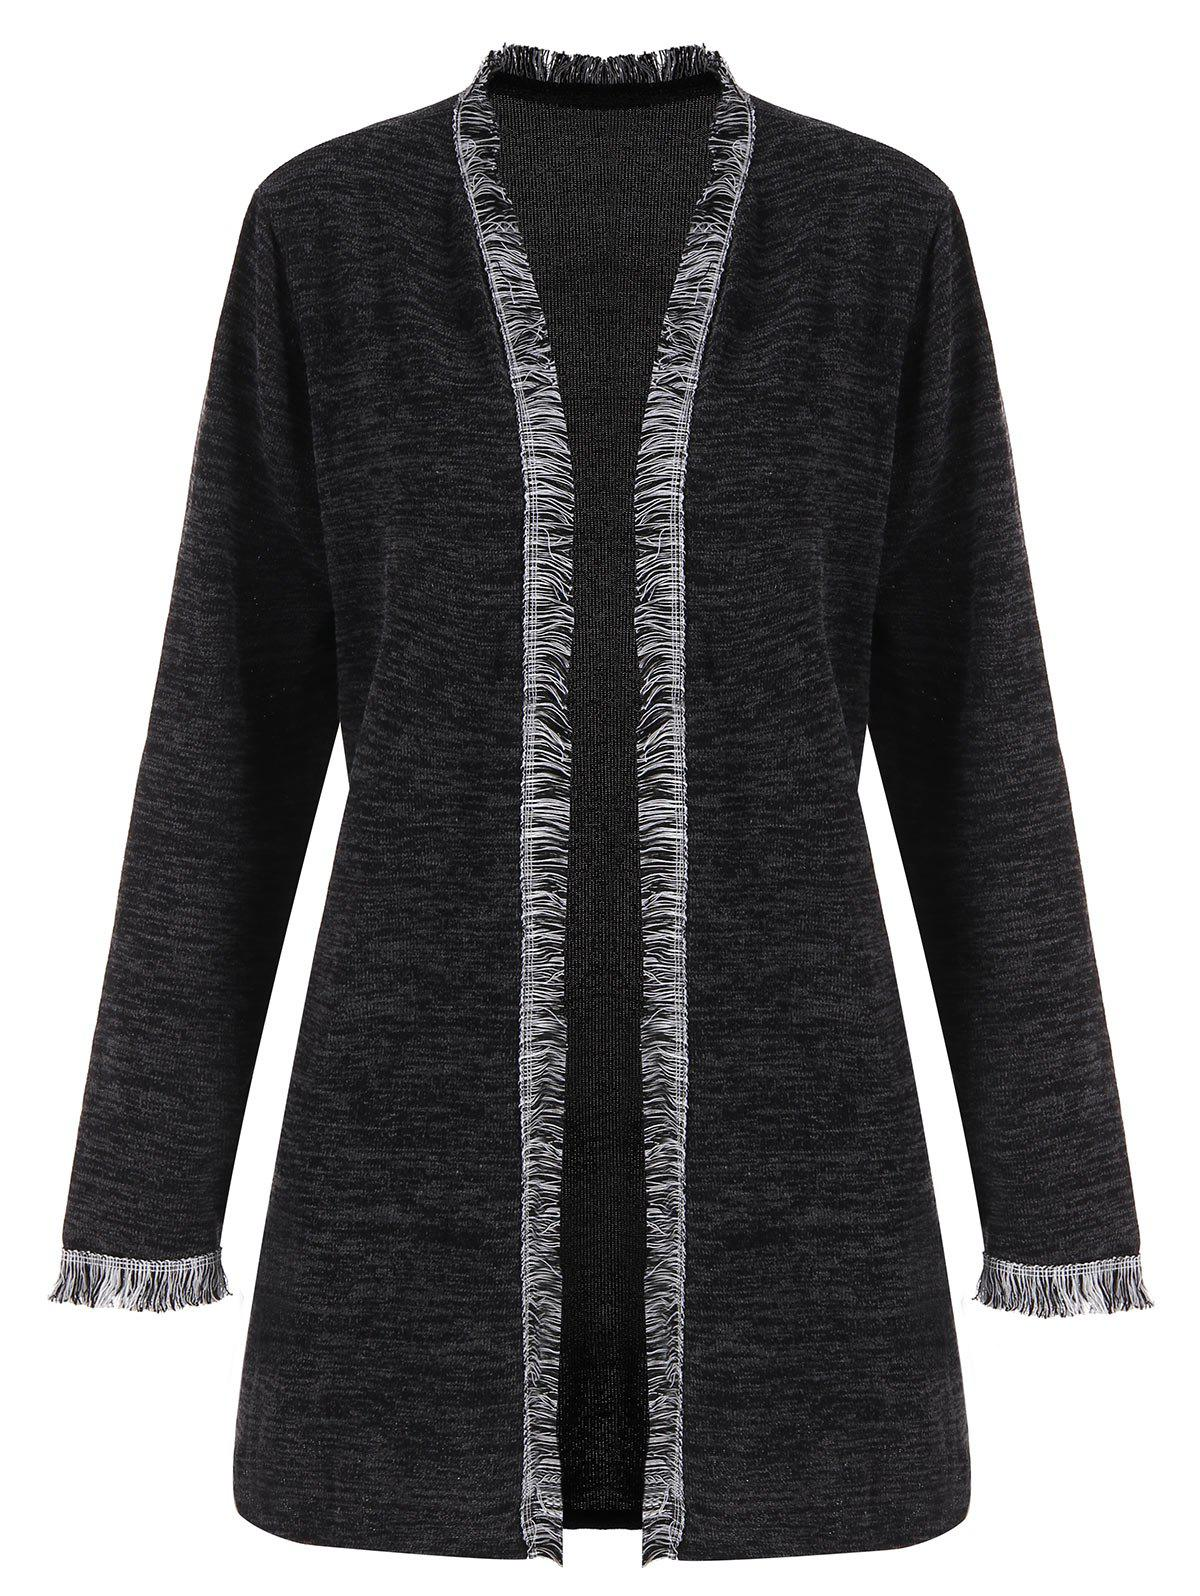 Plus Size Fringed Space Dye CardiganWOMEN<br><br>Size: 3XL; Color: DEEP GRAY; Type: Cardigans; Material: Acrylic,Polyester; Sleeve Length: Full; Collar: Collarless; Style: Casual; Season: Fall; Pattern Type: Solid; Weight: 0.3300kg; Package Contents: 1 x Cardigan;